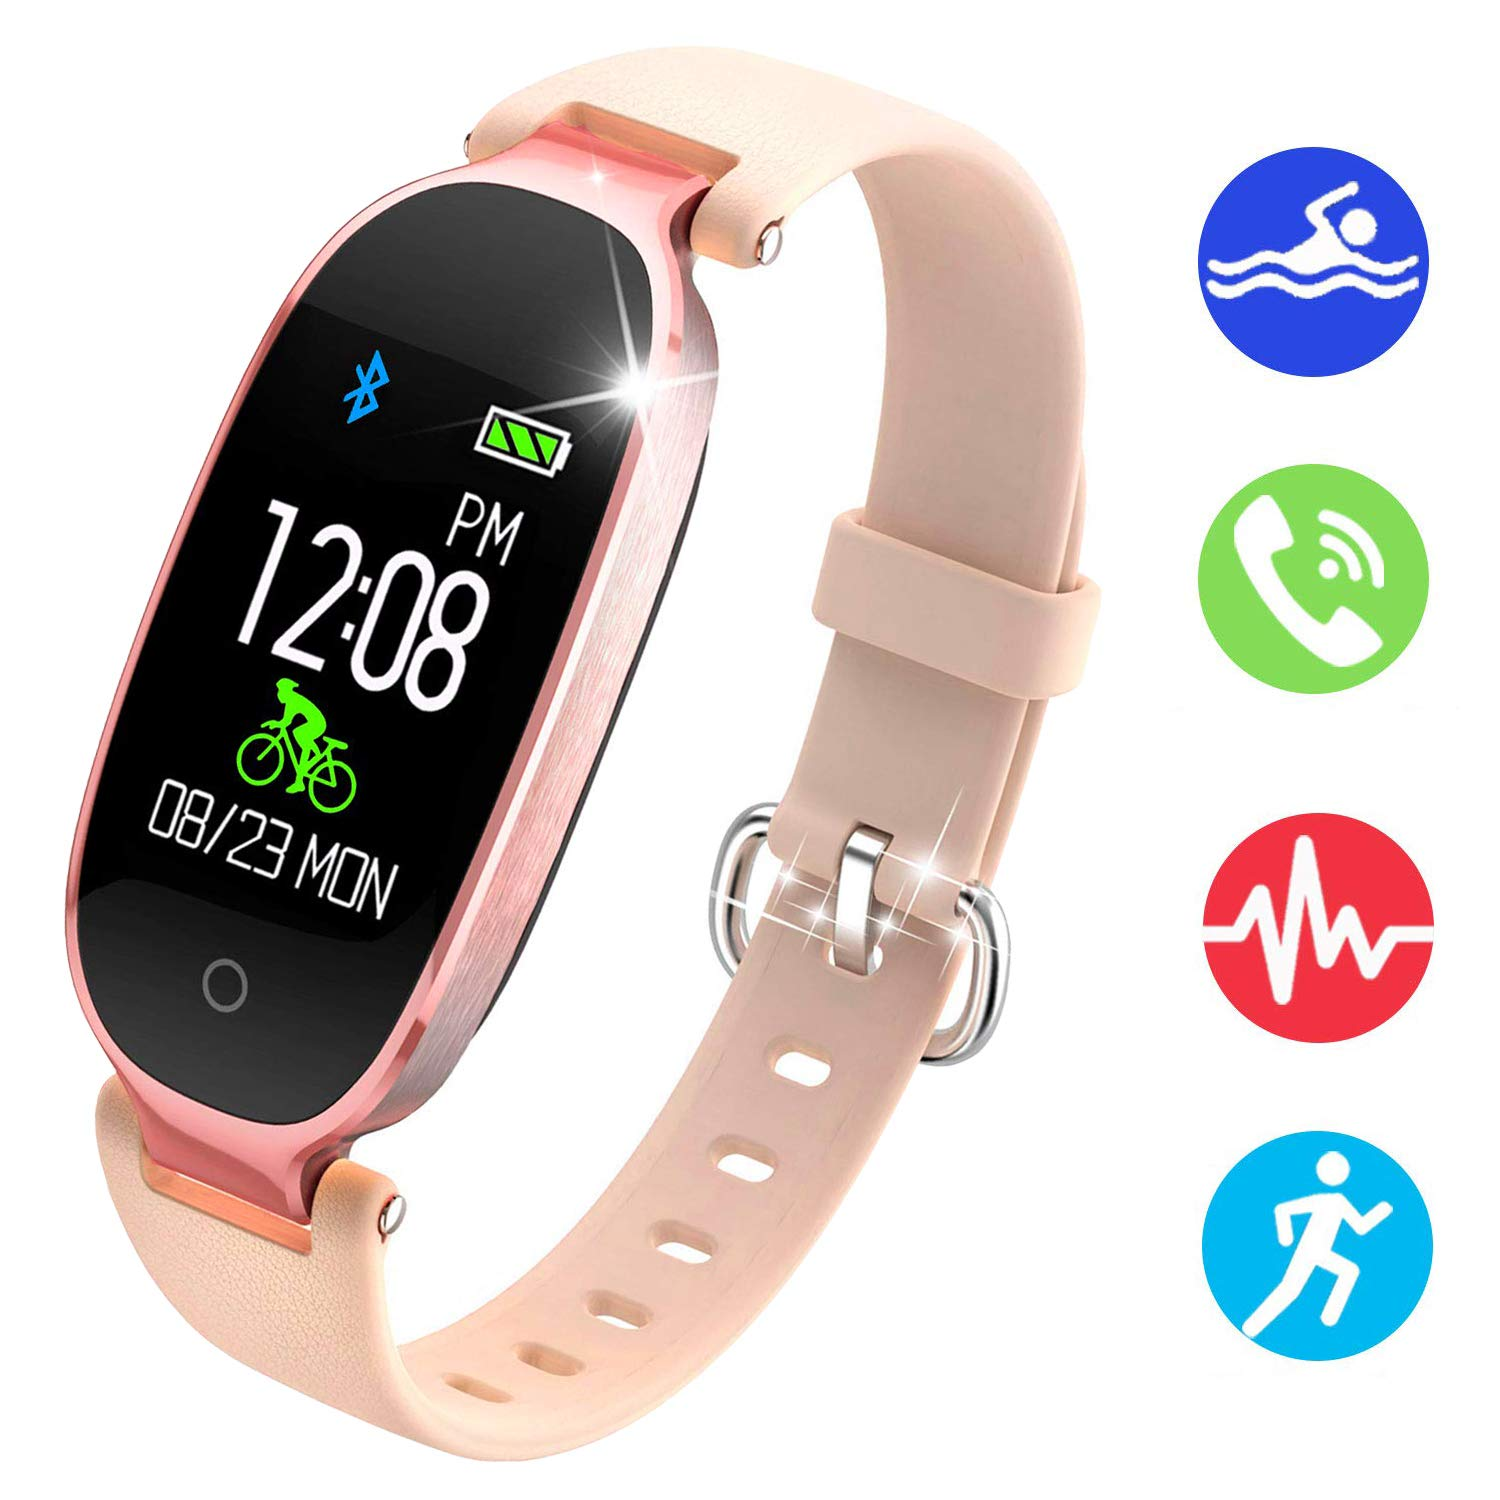 NEWBEING Fitness Watches for Women, Fitness Tracker, Waterproof Smart Watch for Android Phones and iPhone, Health Monitoring Watches, Activity Tracker, Pedometer for Walking, Heart Rate Monitor Kids. by NEWBEING